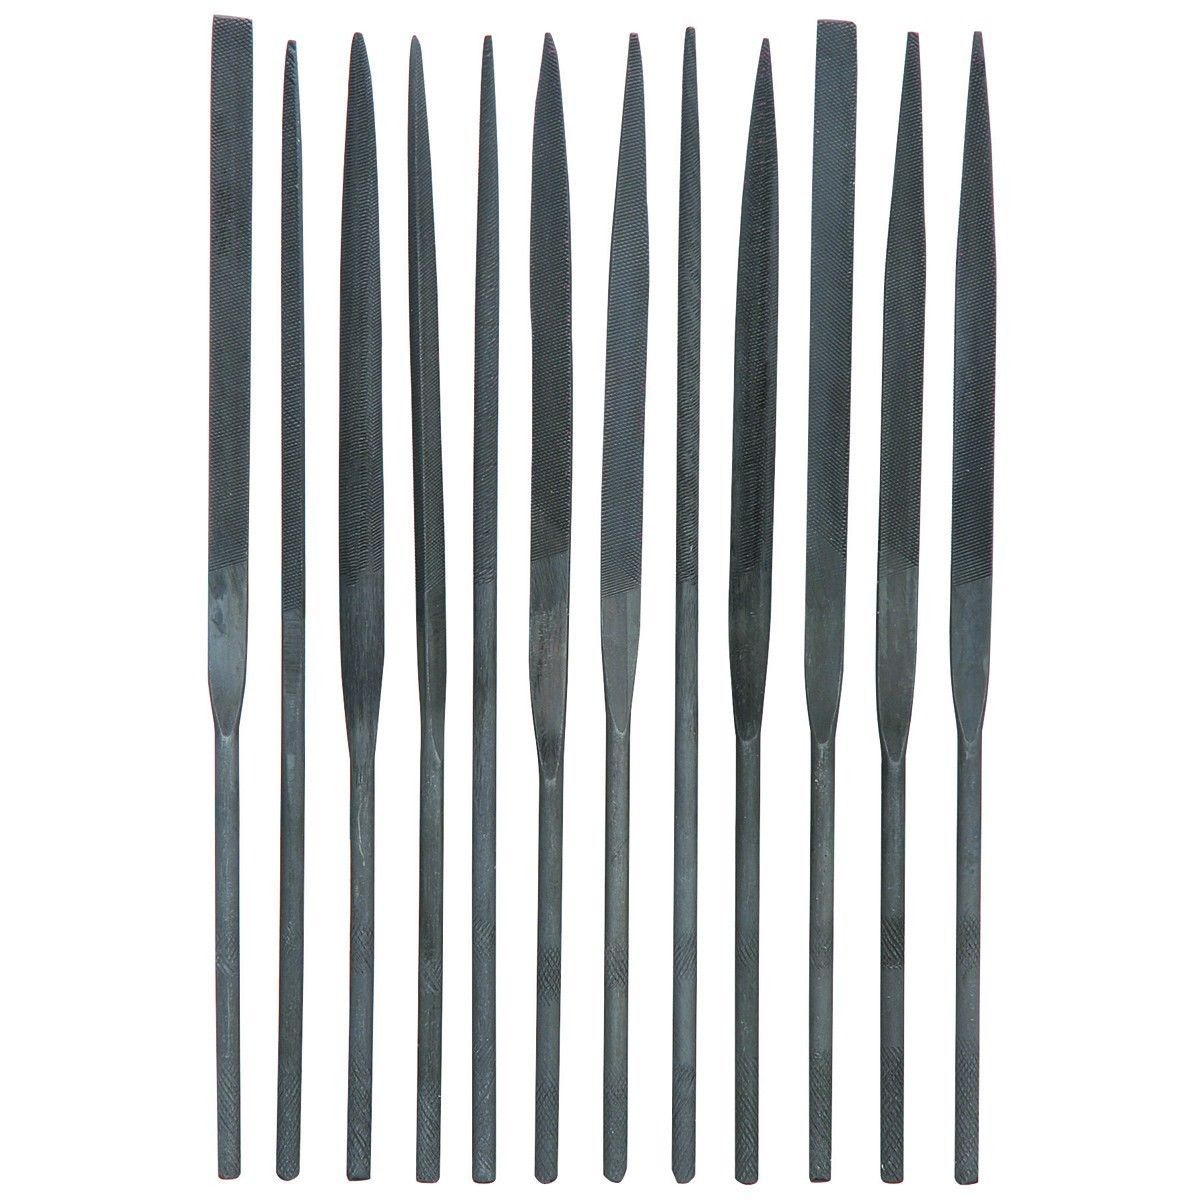 Needle File Set 12 Piece Central Forge